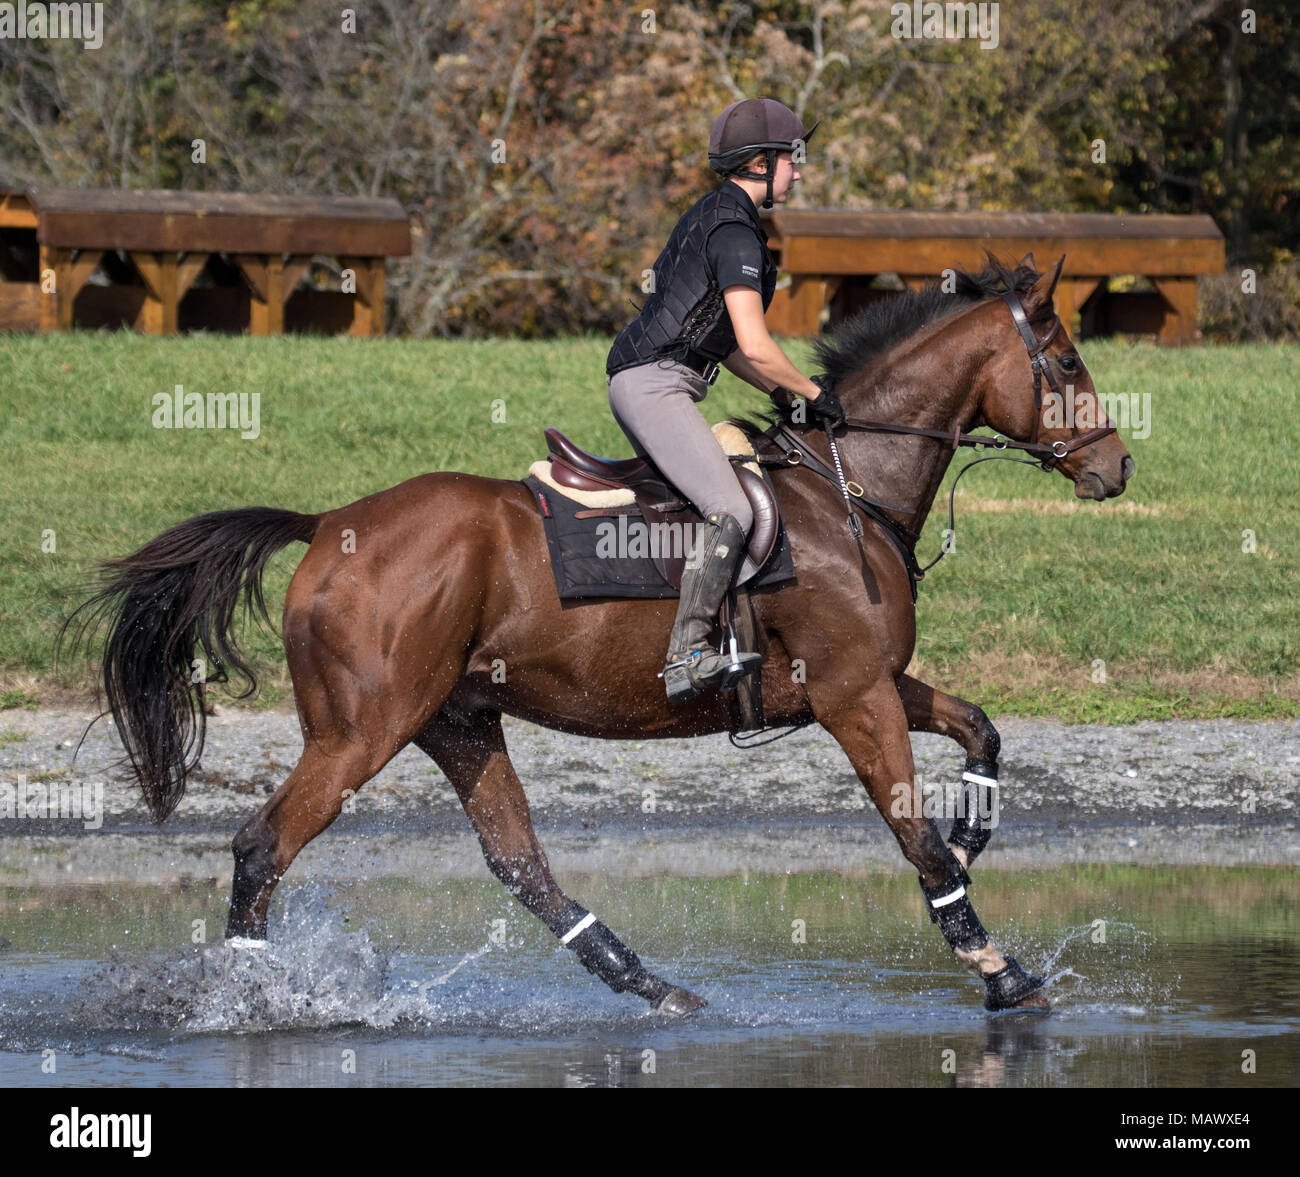 A horse and rider gallop through the water complex at Loch Moy Farm. - Stock Image